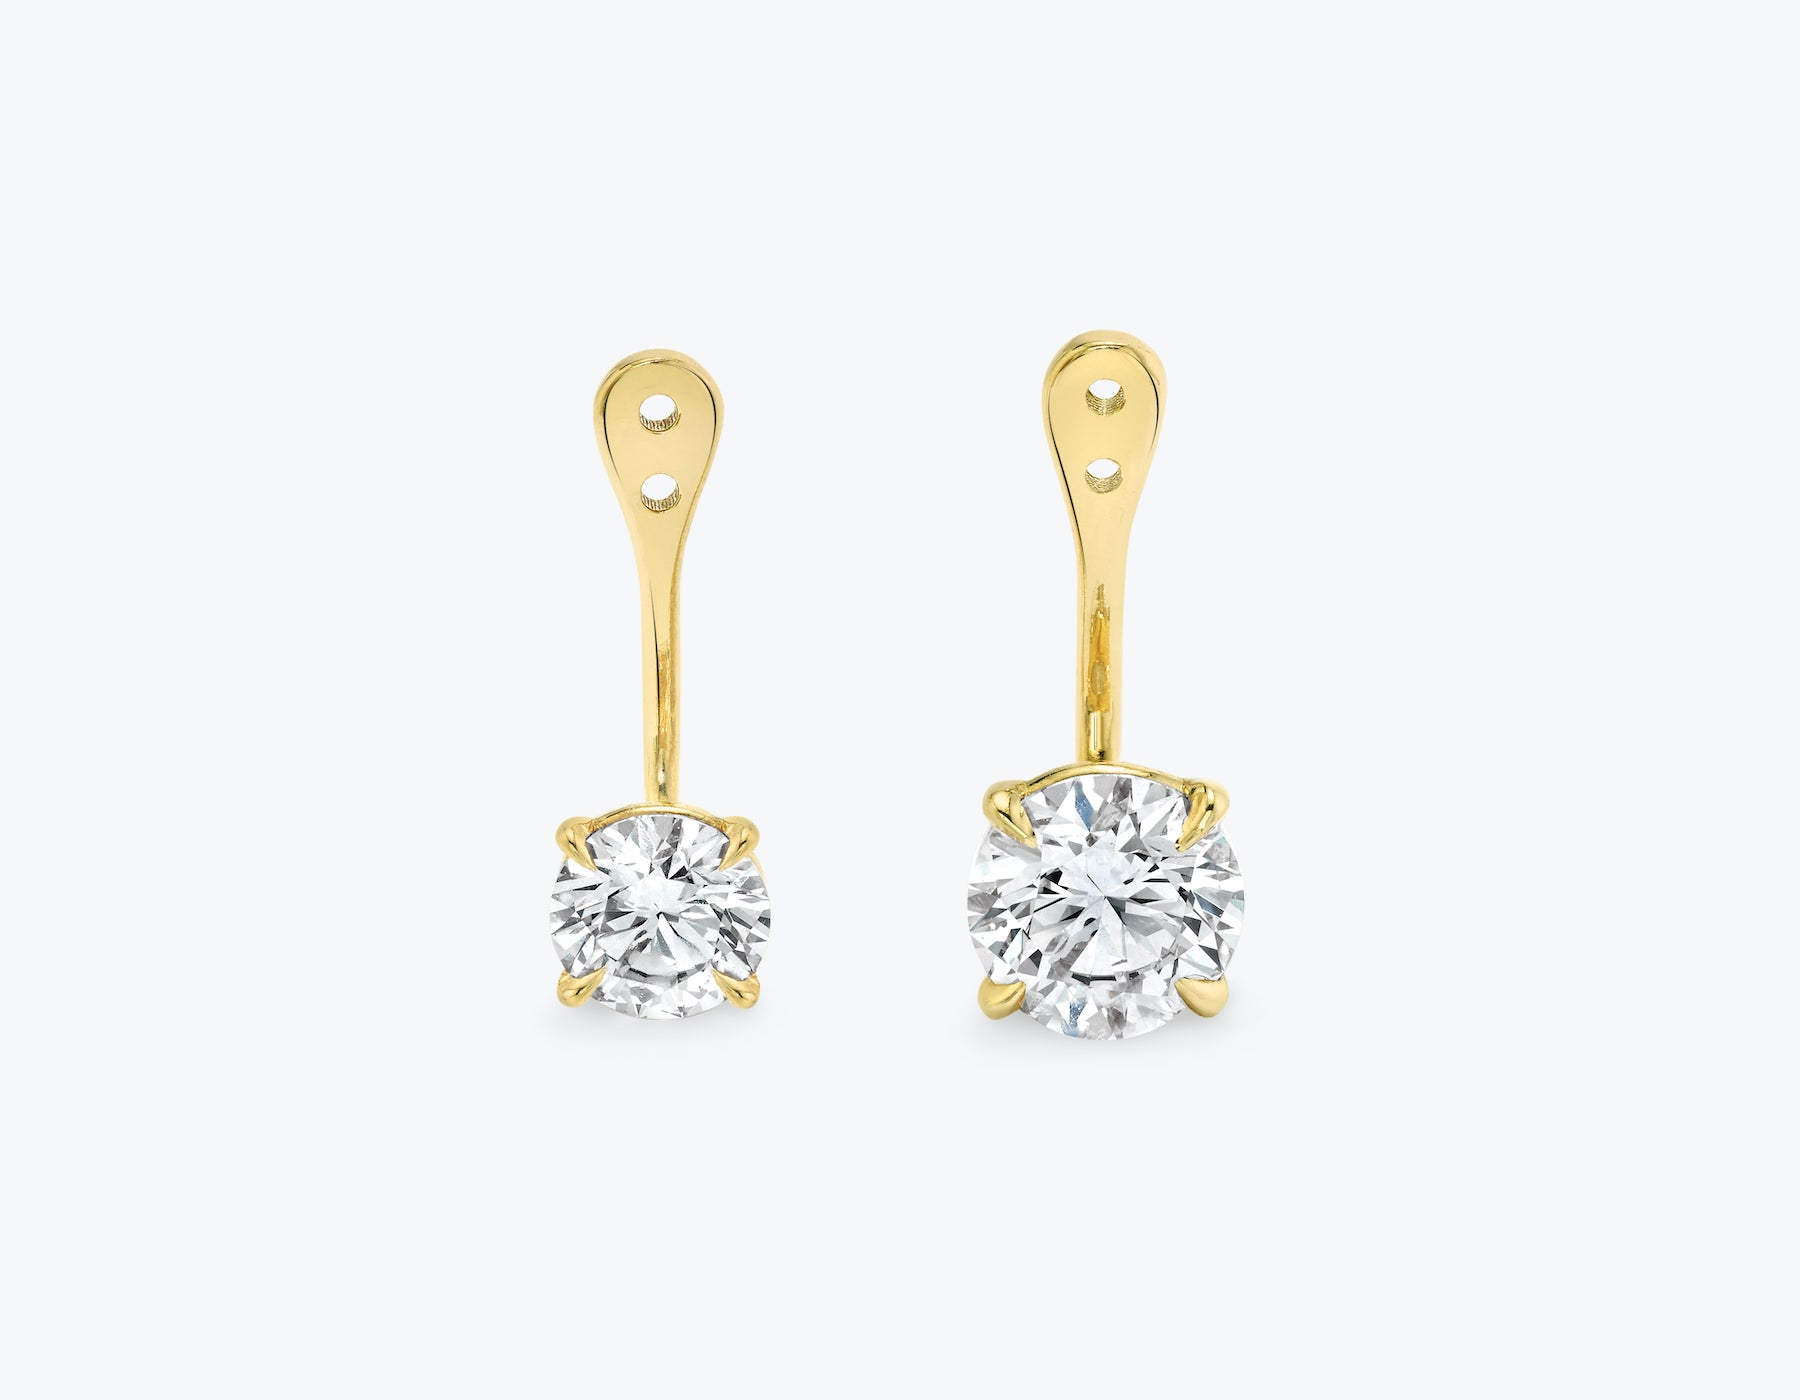 Vrai solitaire round brilliant diamond drop ear jackets made in 14k solid gold with sustainably created diamonds, 14K Yellow Gold